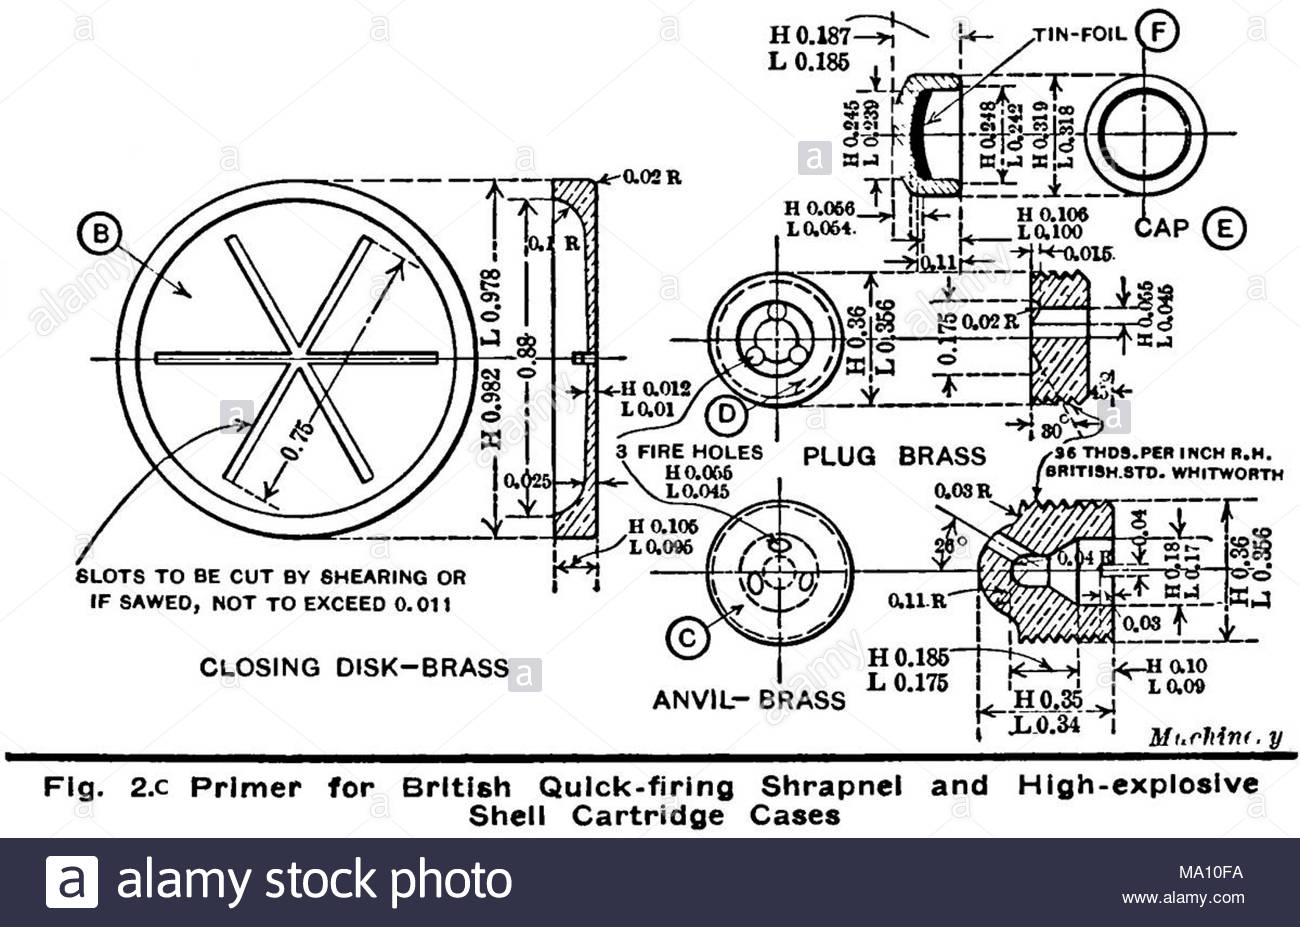 Primer cartridge stock photos primer cartridge stock images alamy diagram 2c of cartridge case and primer for british 18 pounder field gun world war pooptronica Image collections